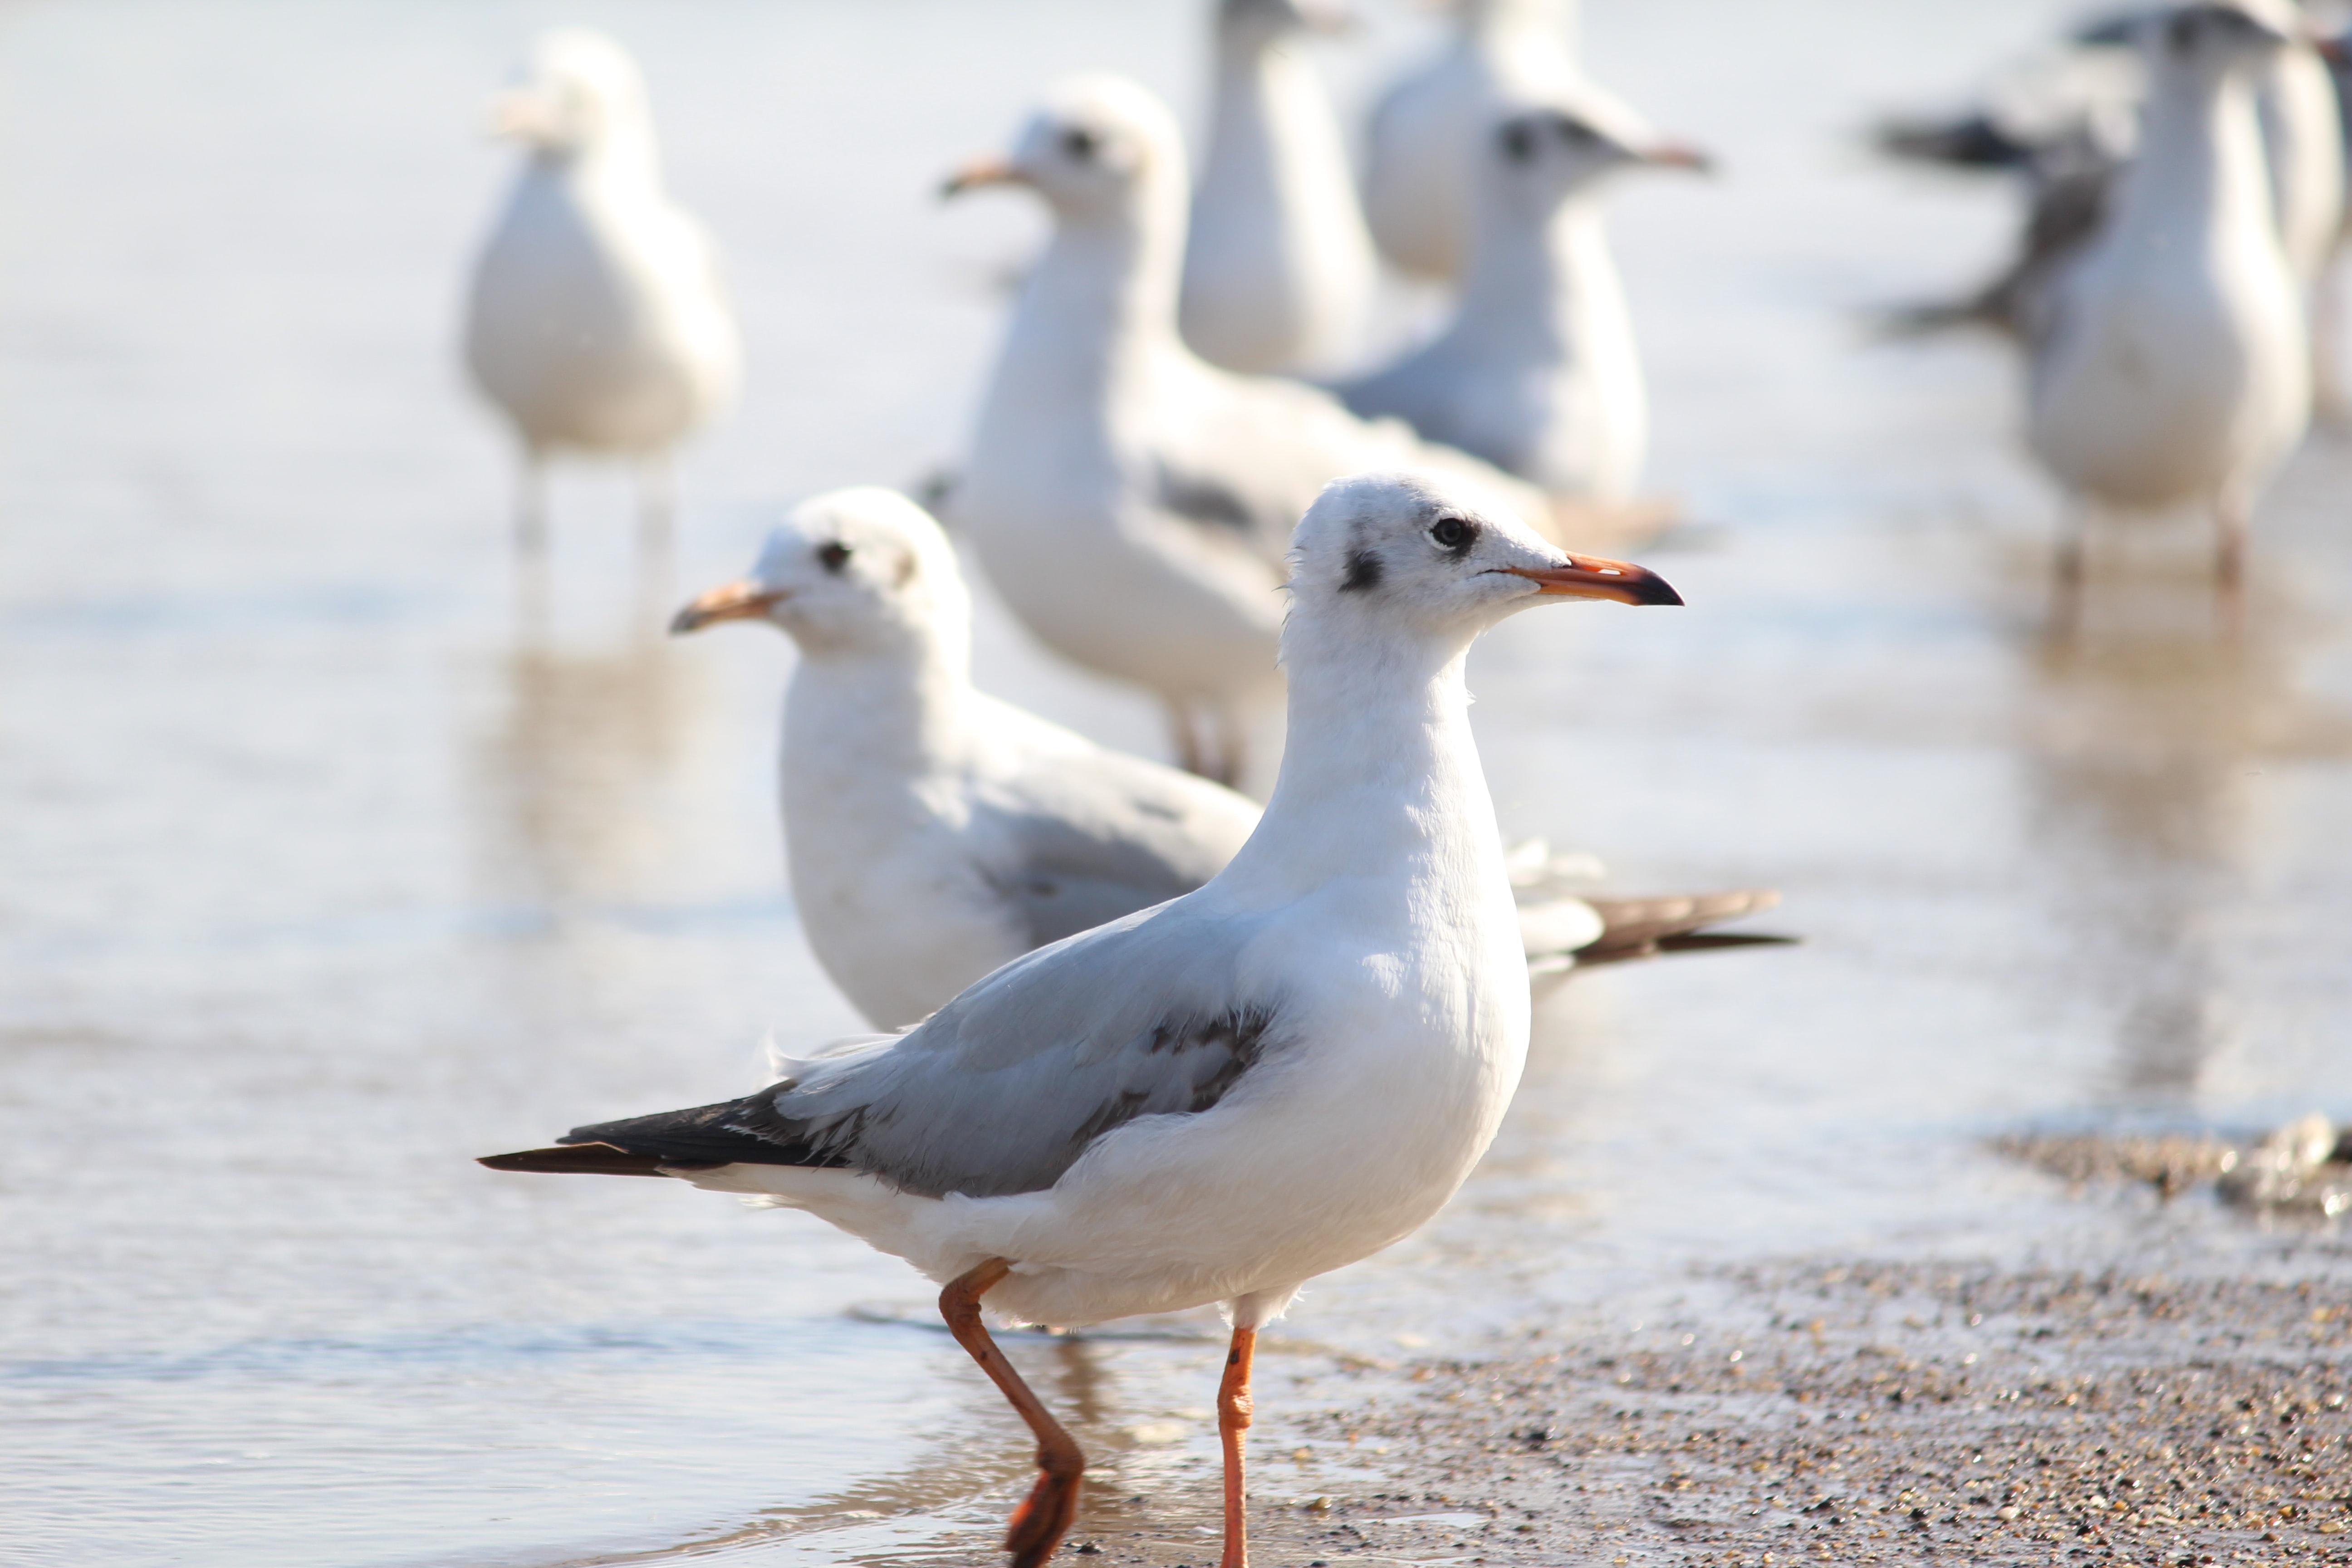 flock of white seagulls on body of water